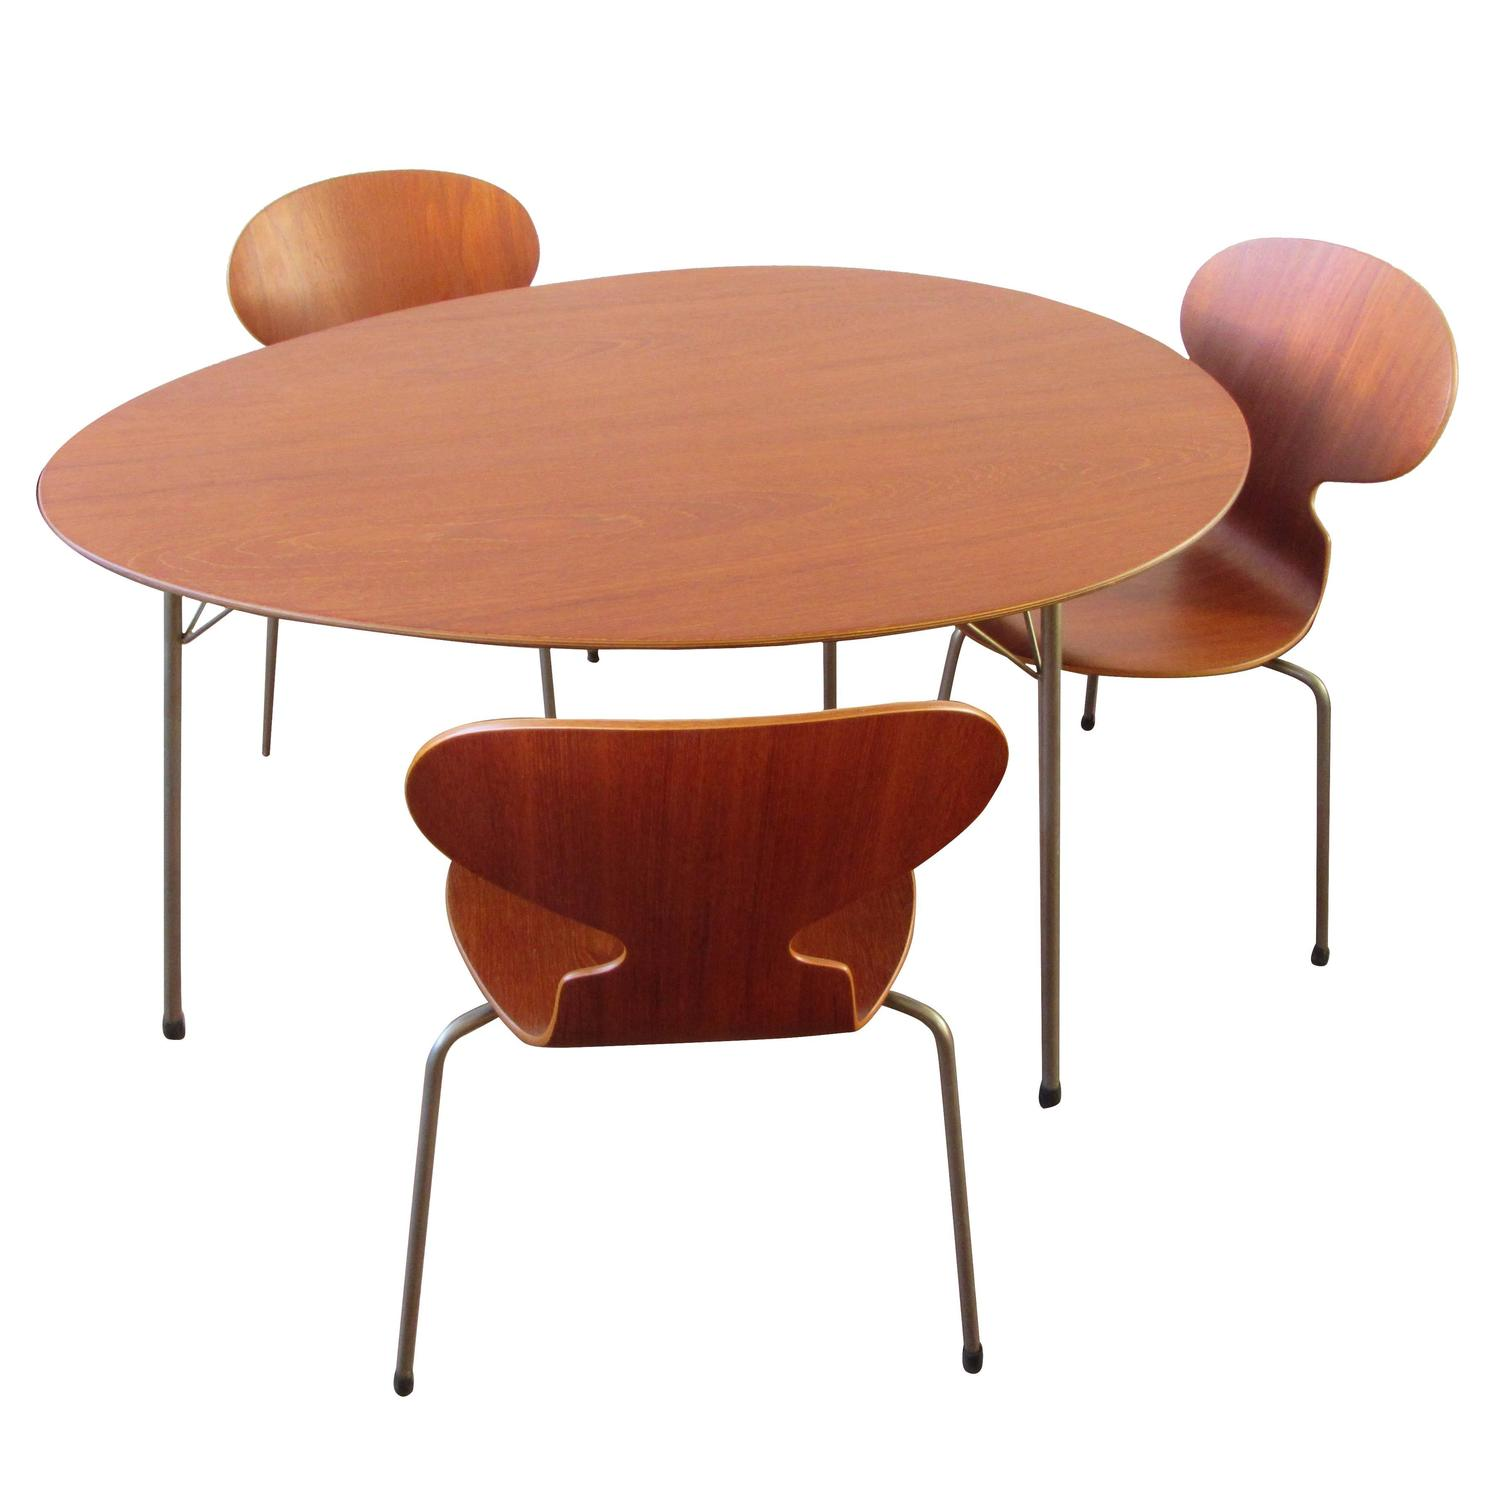 Pristine Three Legged Ant Table Set in Teak with Three Chairs by